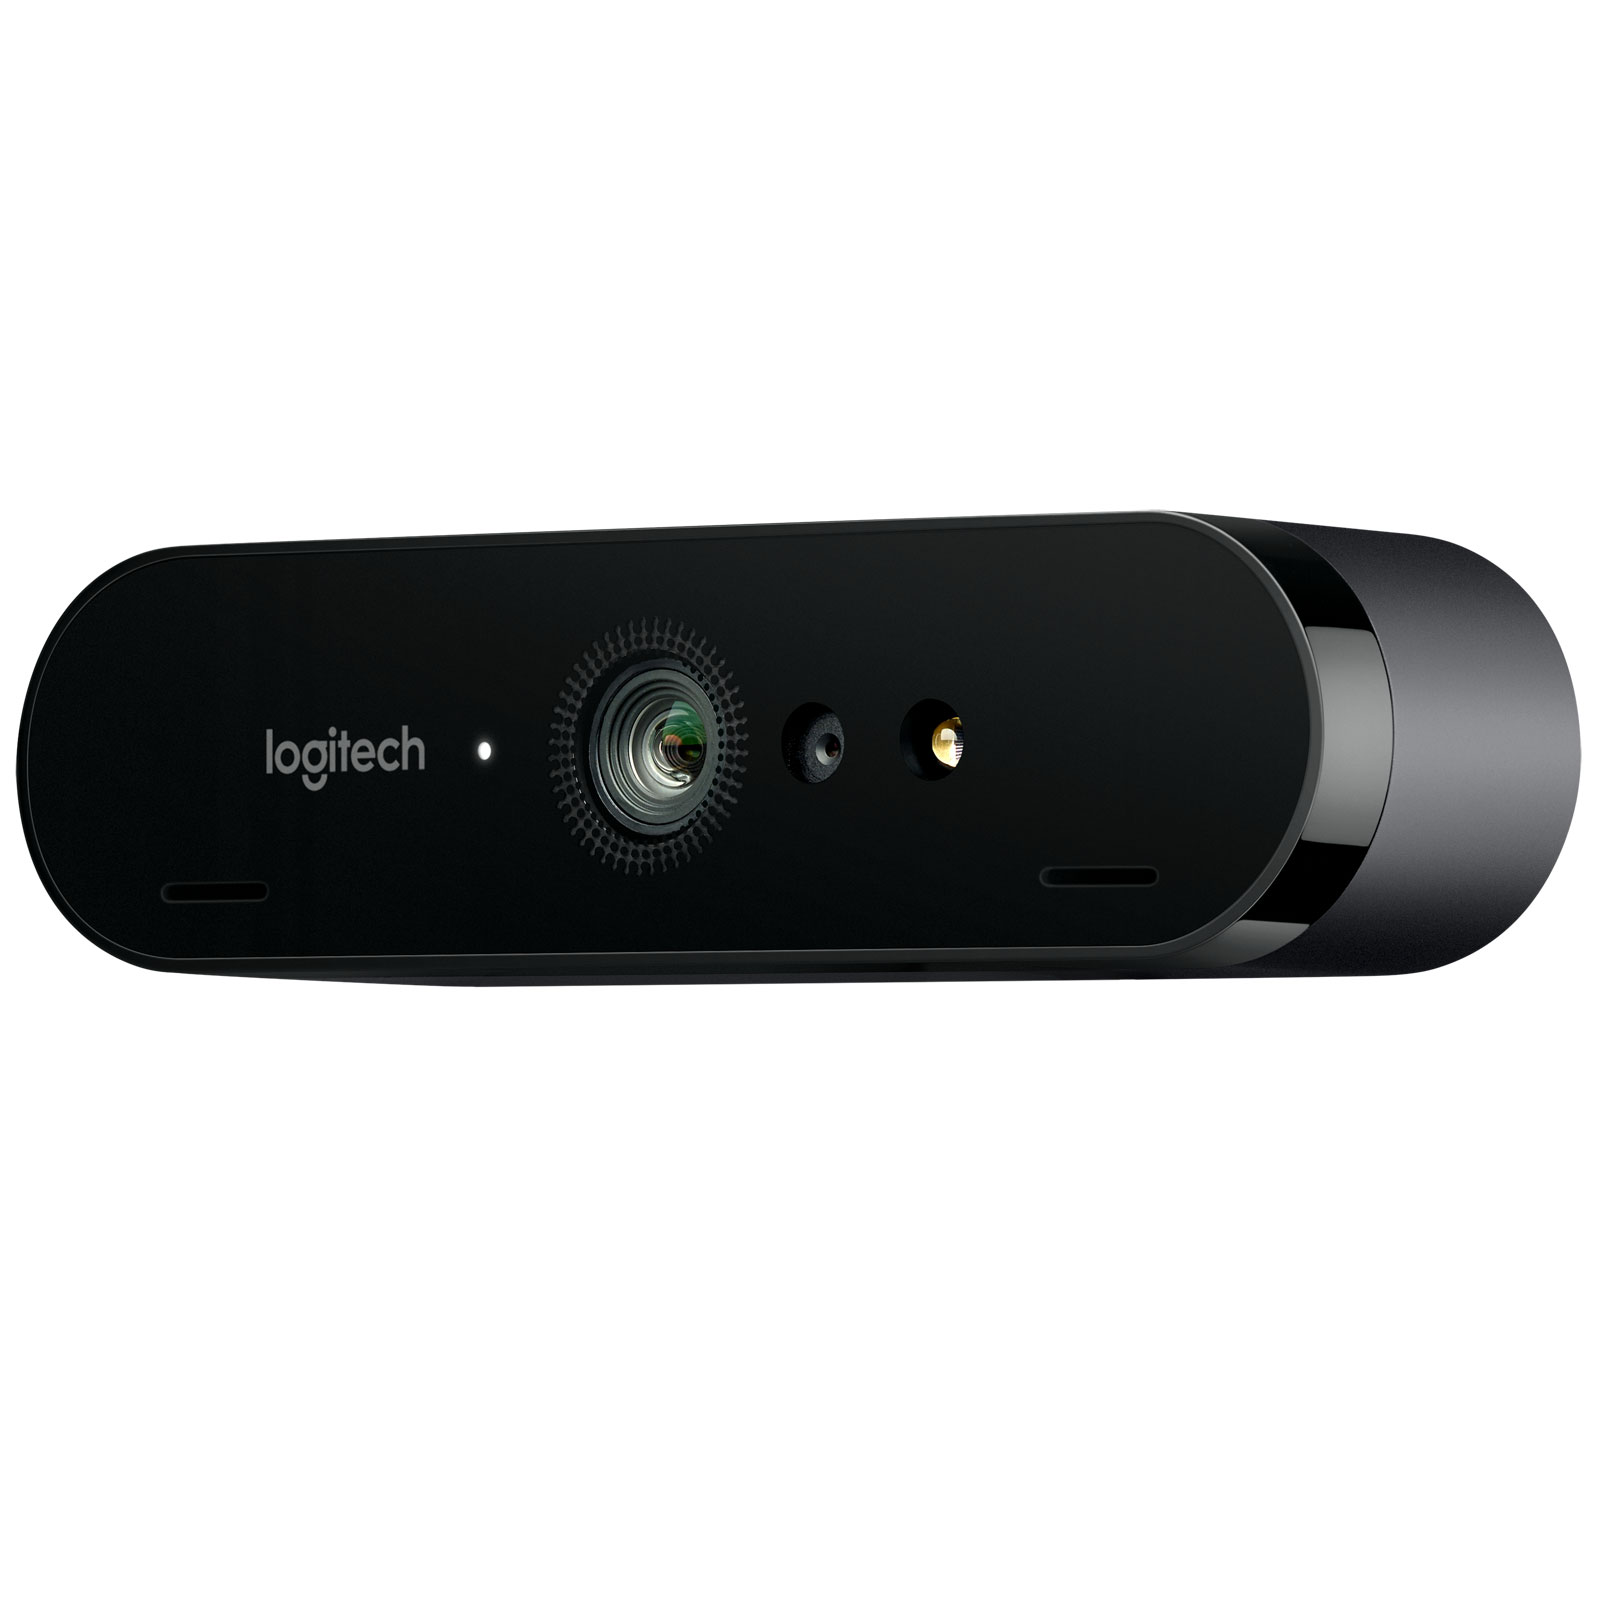 logitech brio 4k stream edition webcam logitech sur. Black Bedroom Furniture Sets. Home Design Ideas